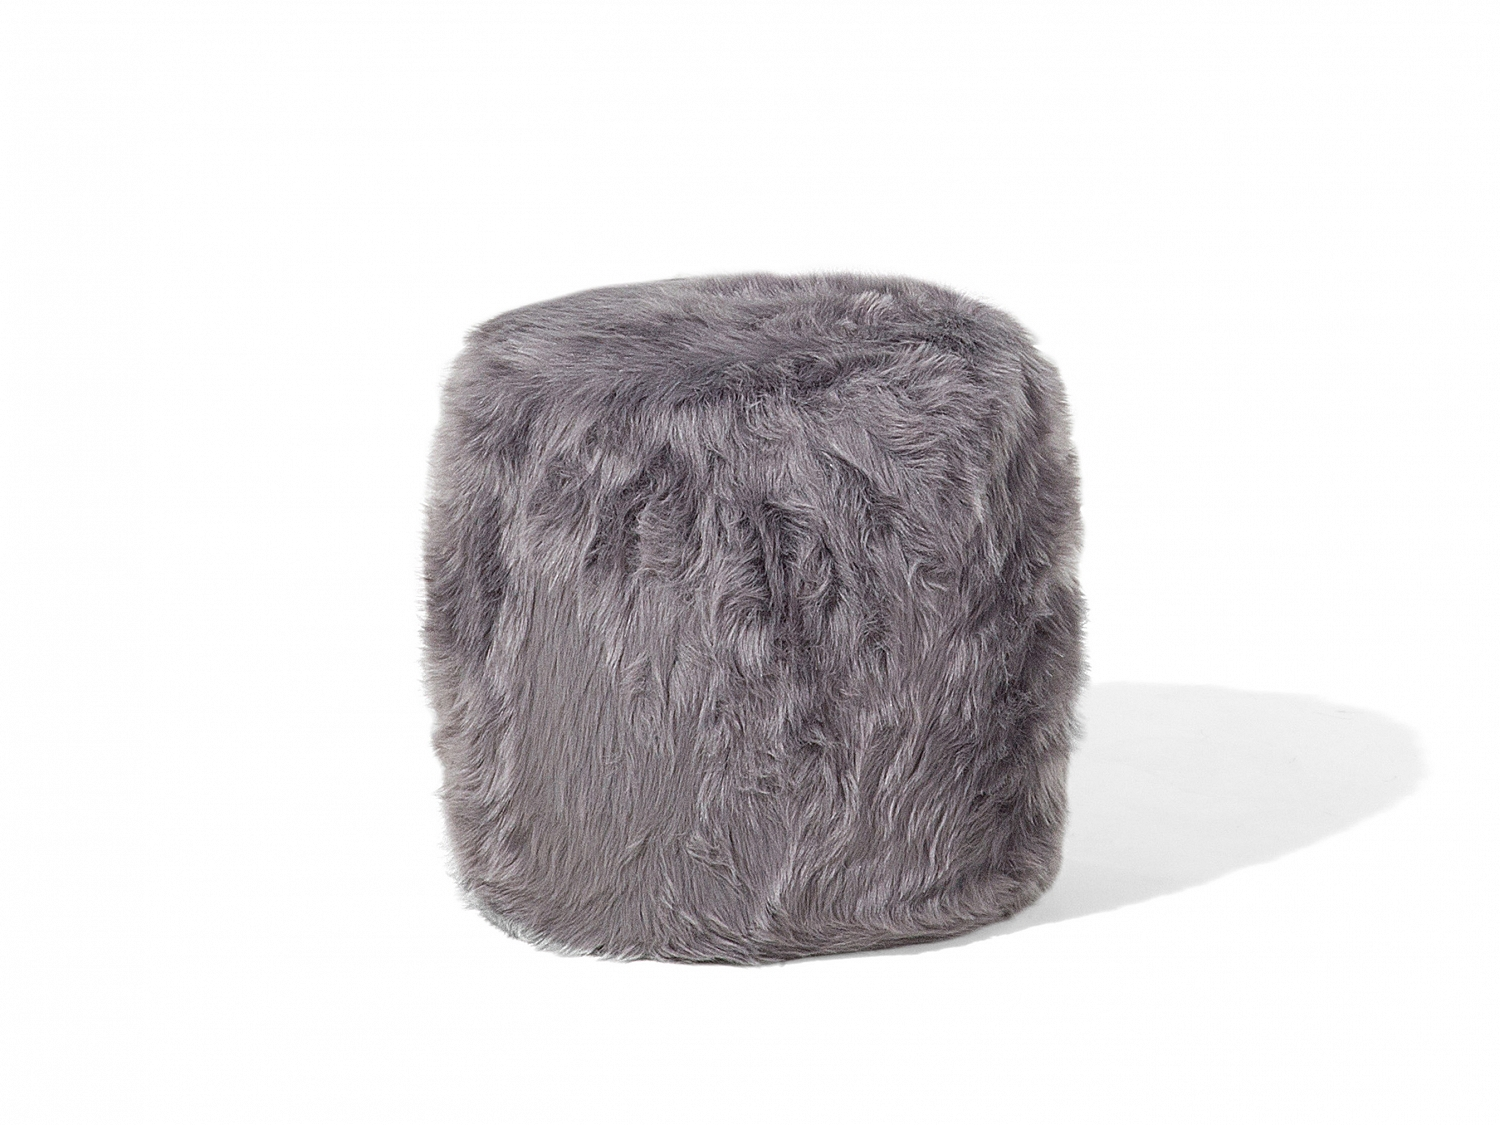 Living Room Stools Uk Ottoman Living Room Stool Pouffe Round Fluffy Shaggy Grey